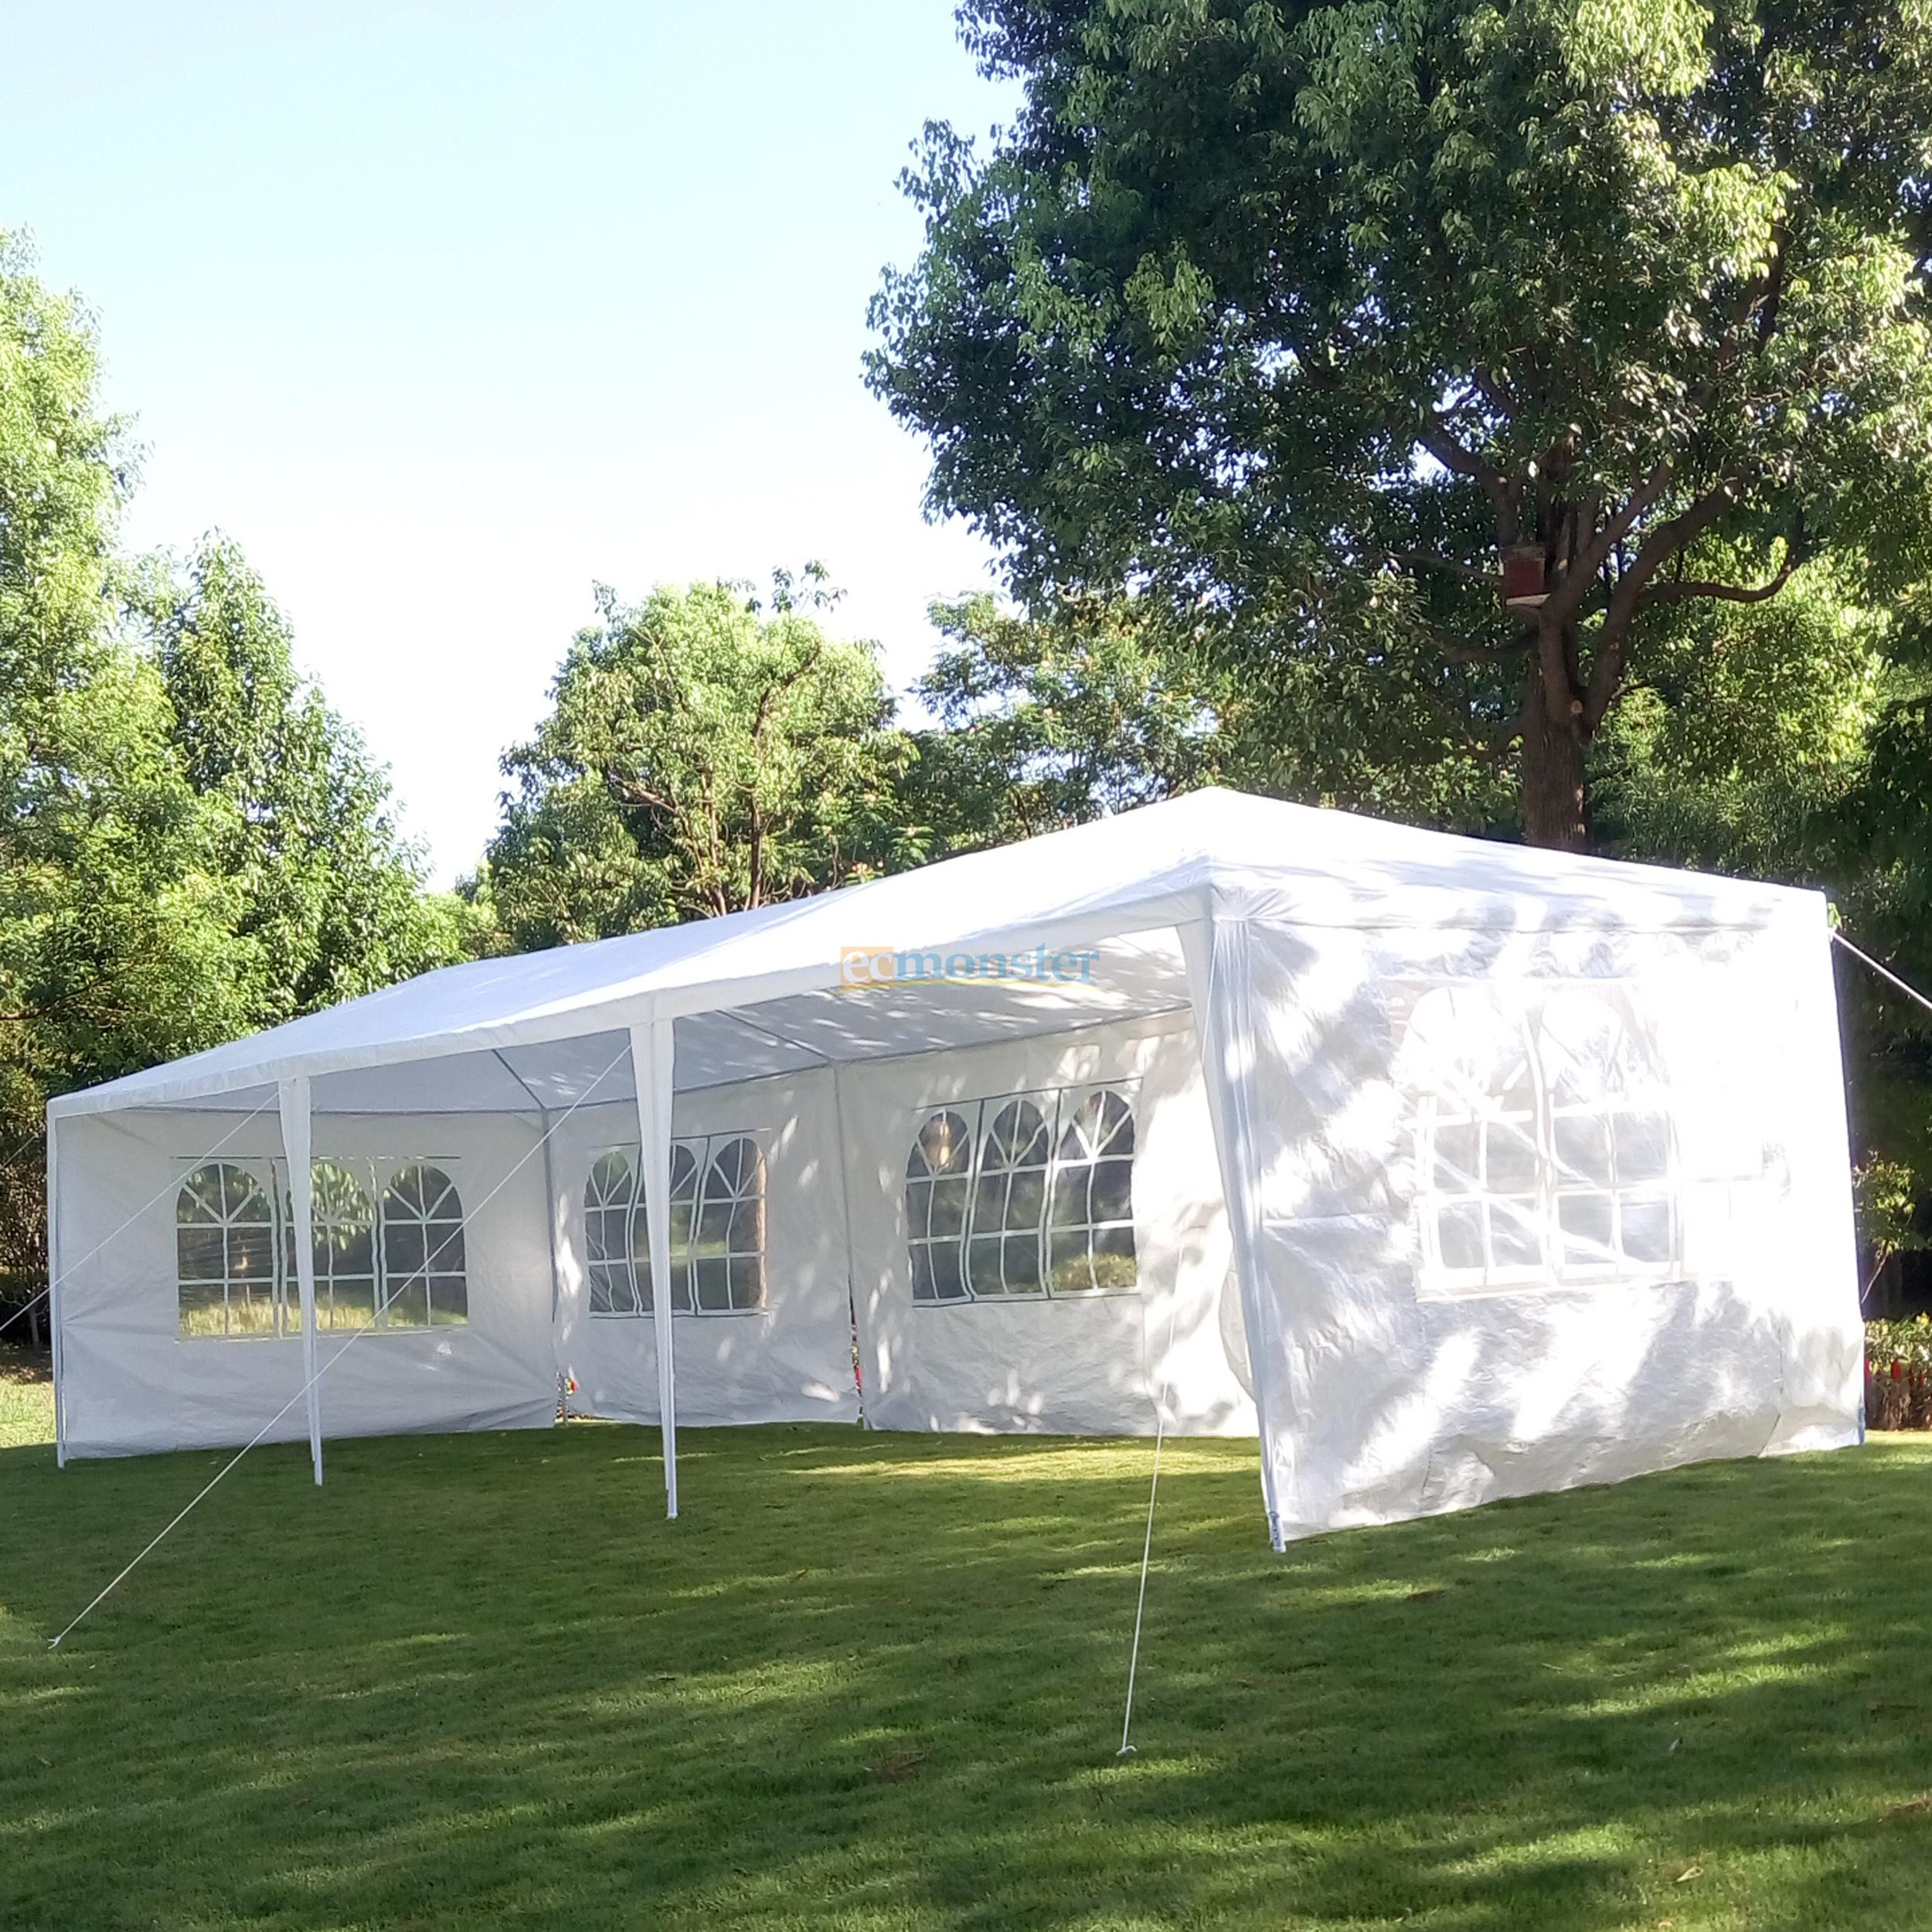 10u0027 X 30u0027 Canopy Outdoor Wedding Party Tent Gazebo Pavilion w/5 Walls Cover New 225386575342 | eBay & 10u0027 X 30u0027 Canopy Outdoor Wedding Party Tent Gazebo Pavilion w/5 ...